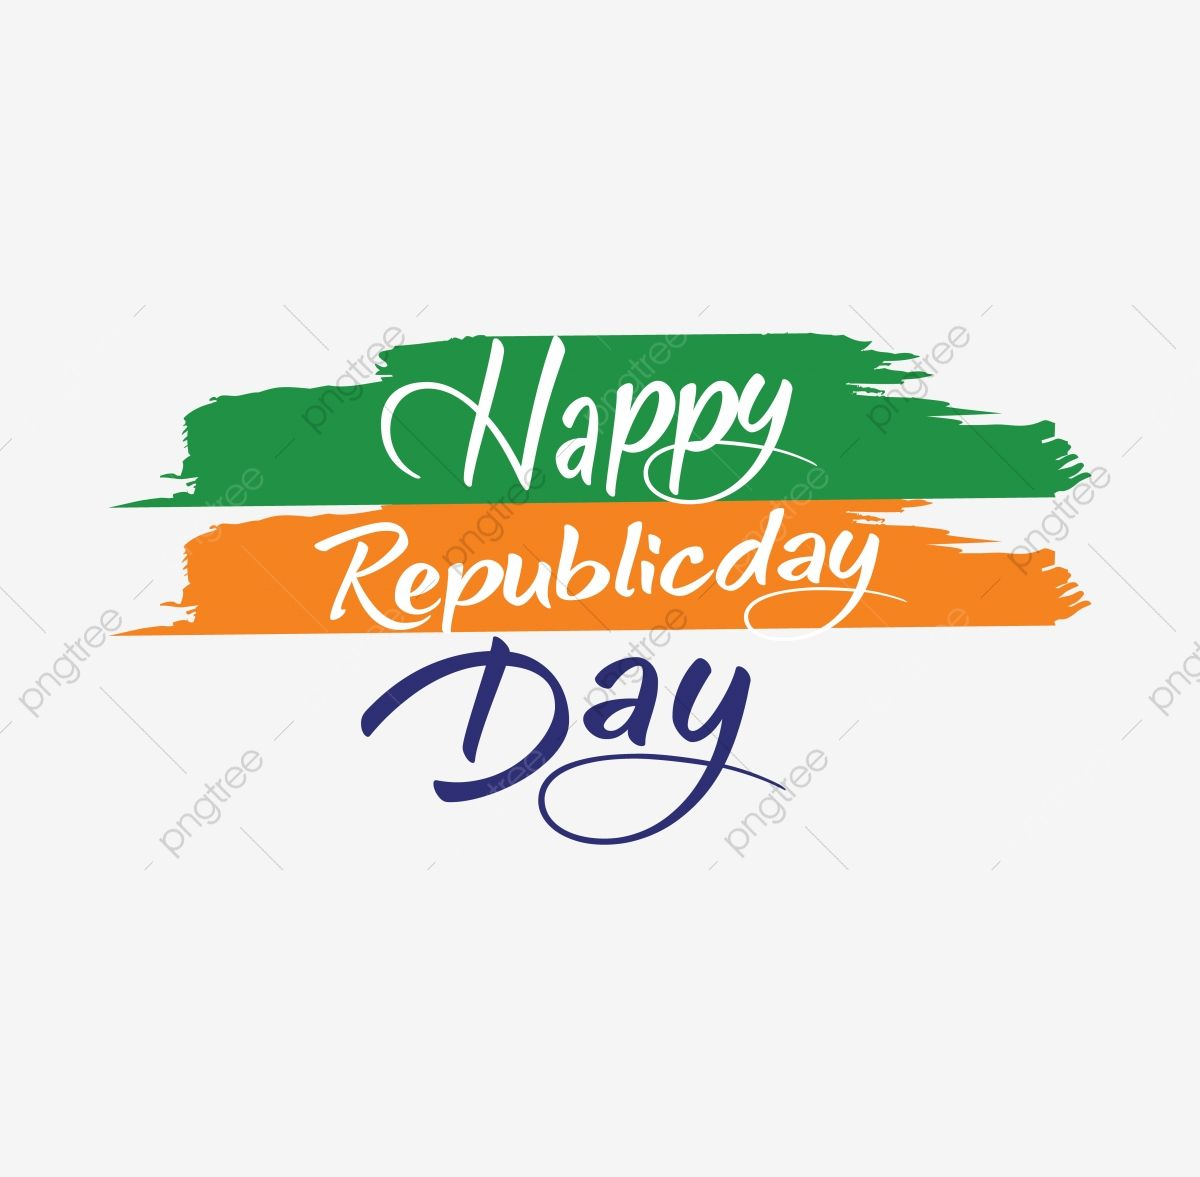 Indian Republic Day Day Icons Republic India Png And Vector With Transparent Background For Free Download Republic Day Photos Republic Day Republic Day India Happy republic day images hd png